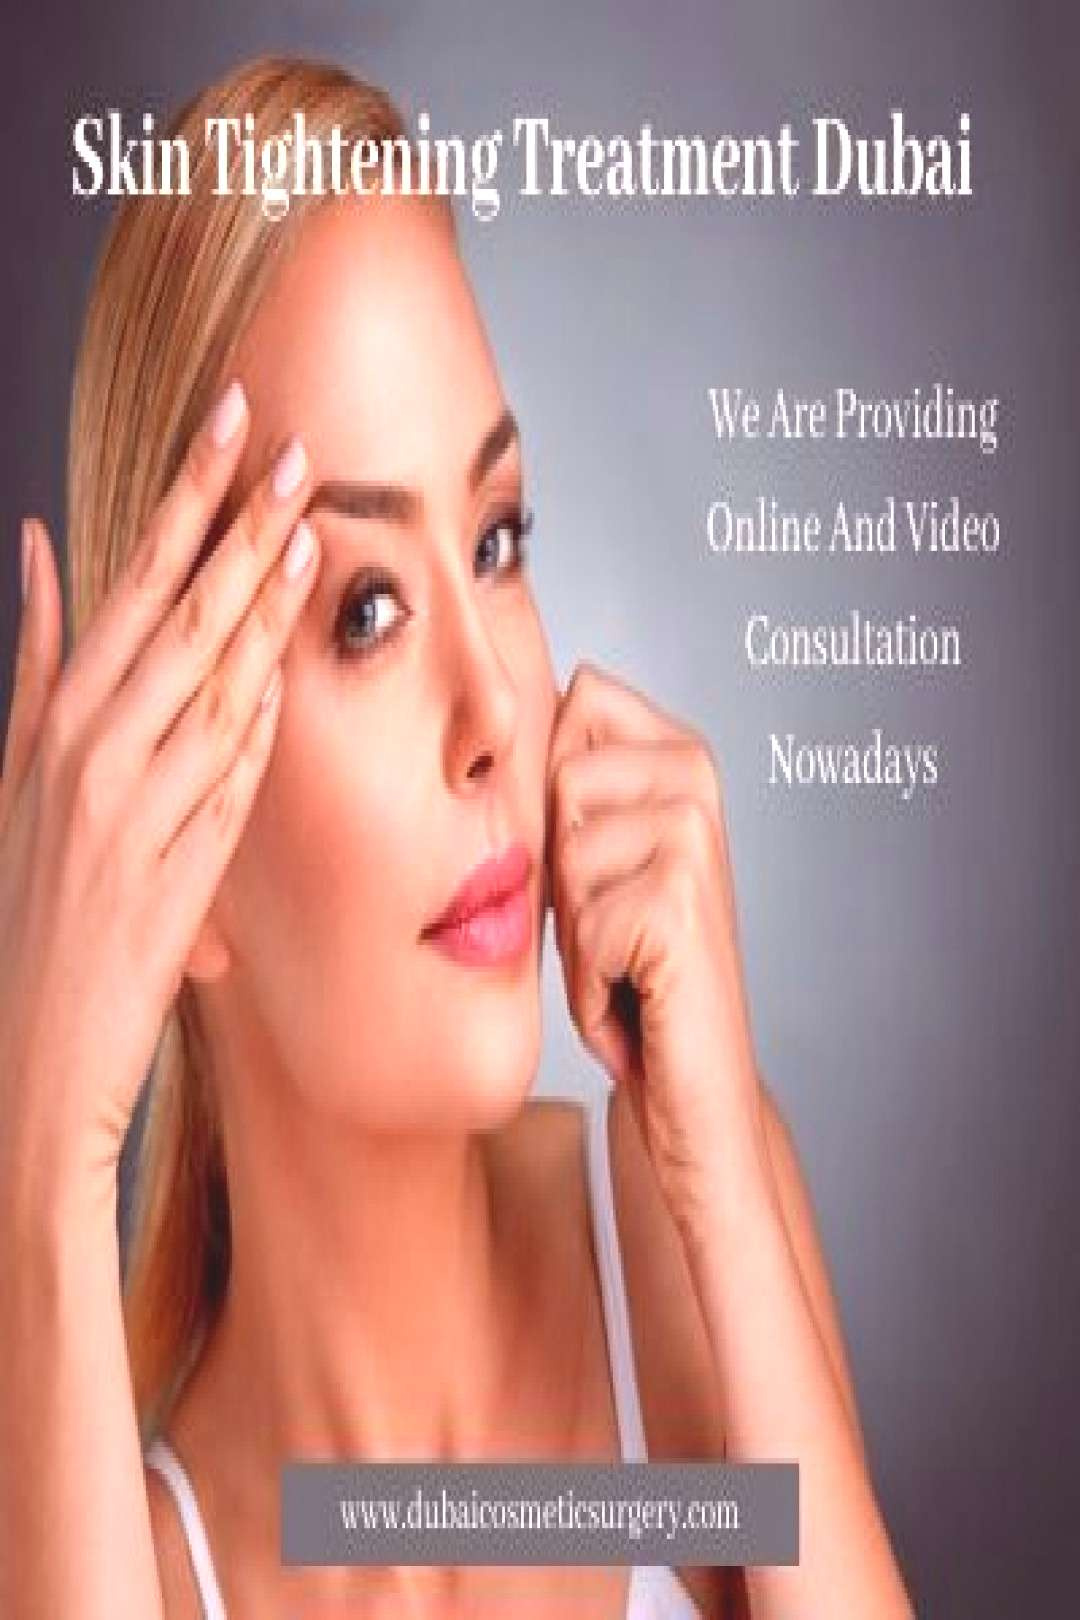 Skin Tightening Treatment Dubai Skin tightening treatment in Dubai and Abu Dhabi is available at re